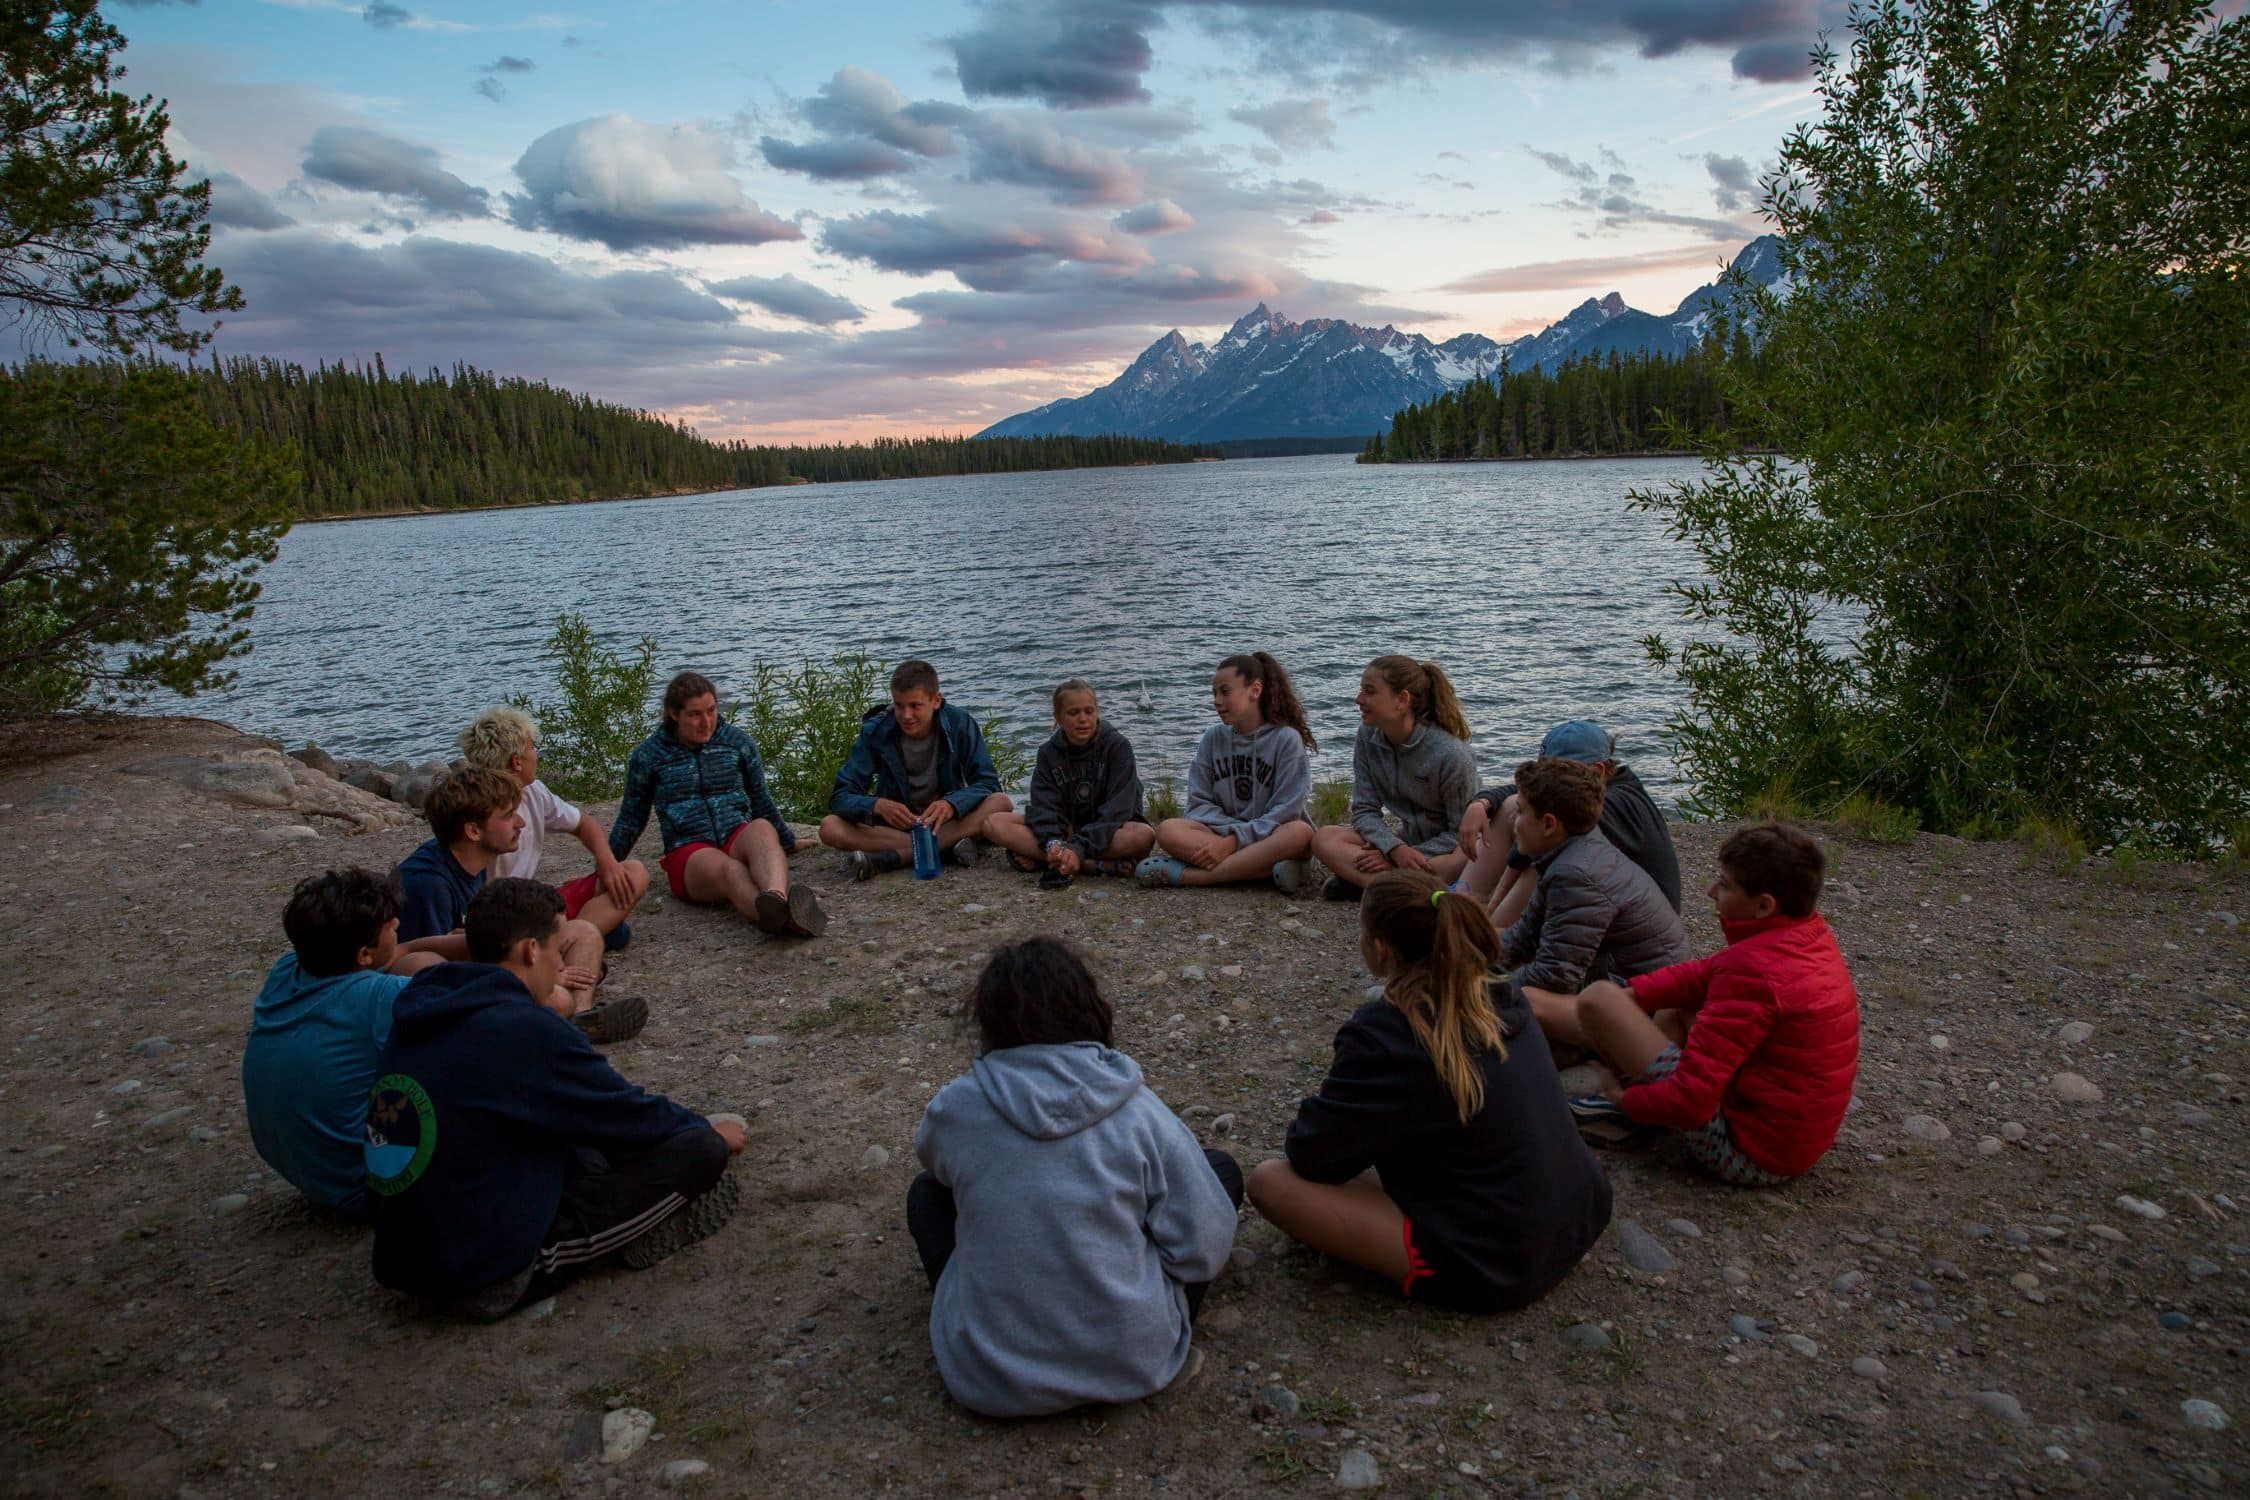 A group of campers reflects upon an amazing day on a teen summer adventure program at sunset